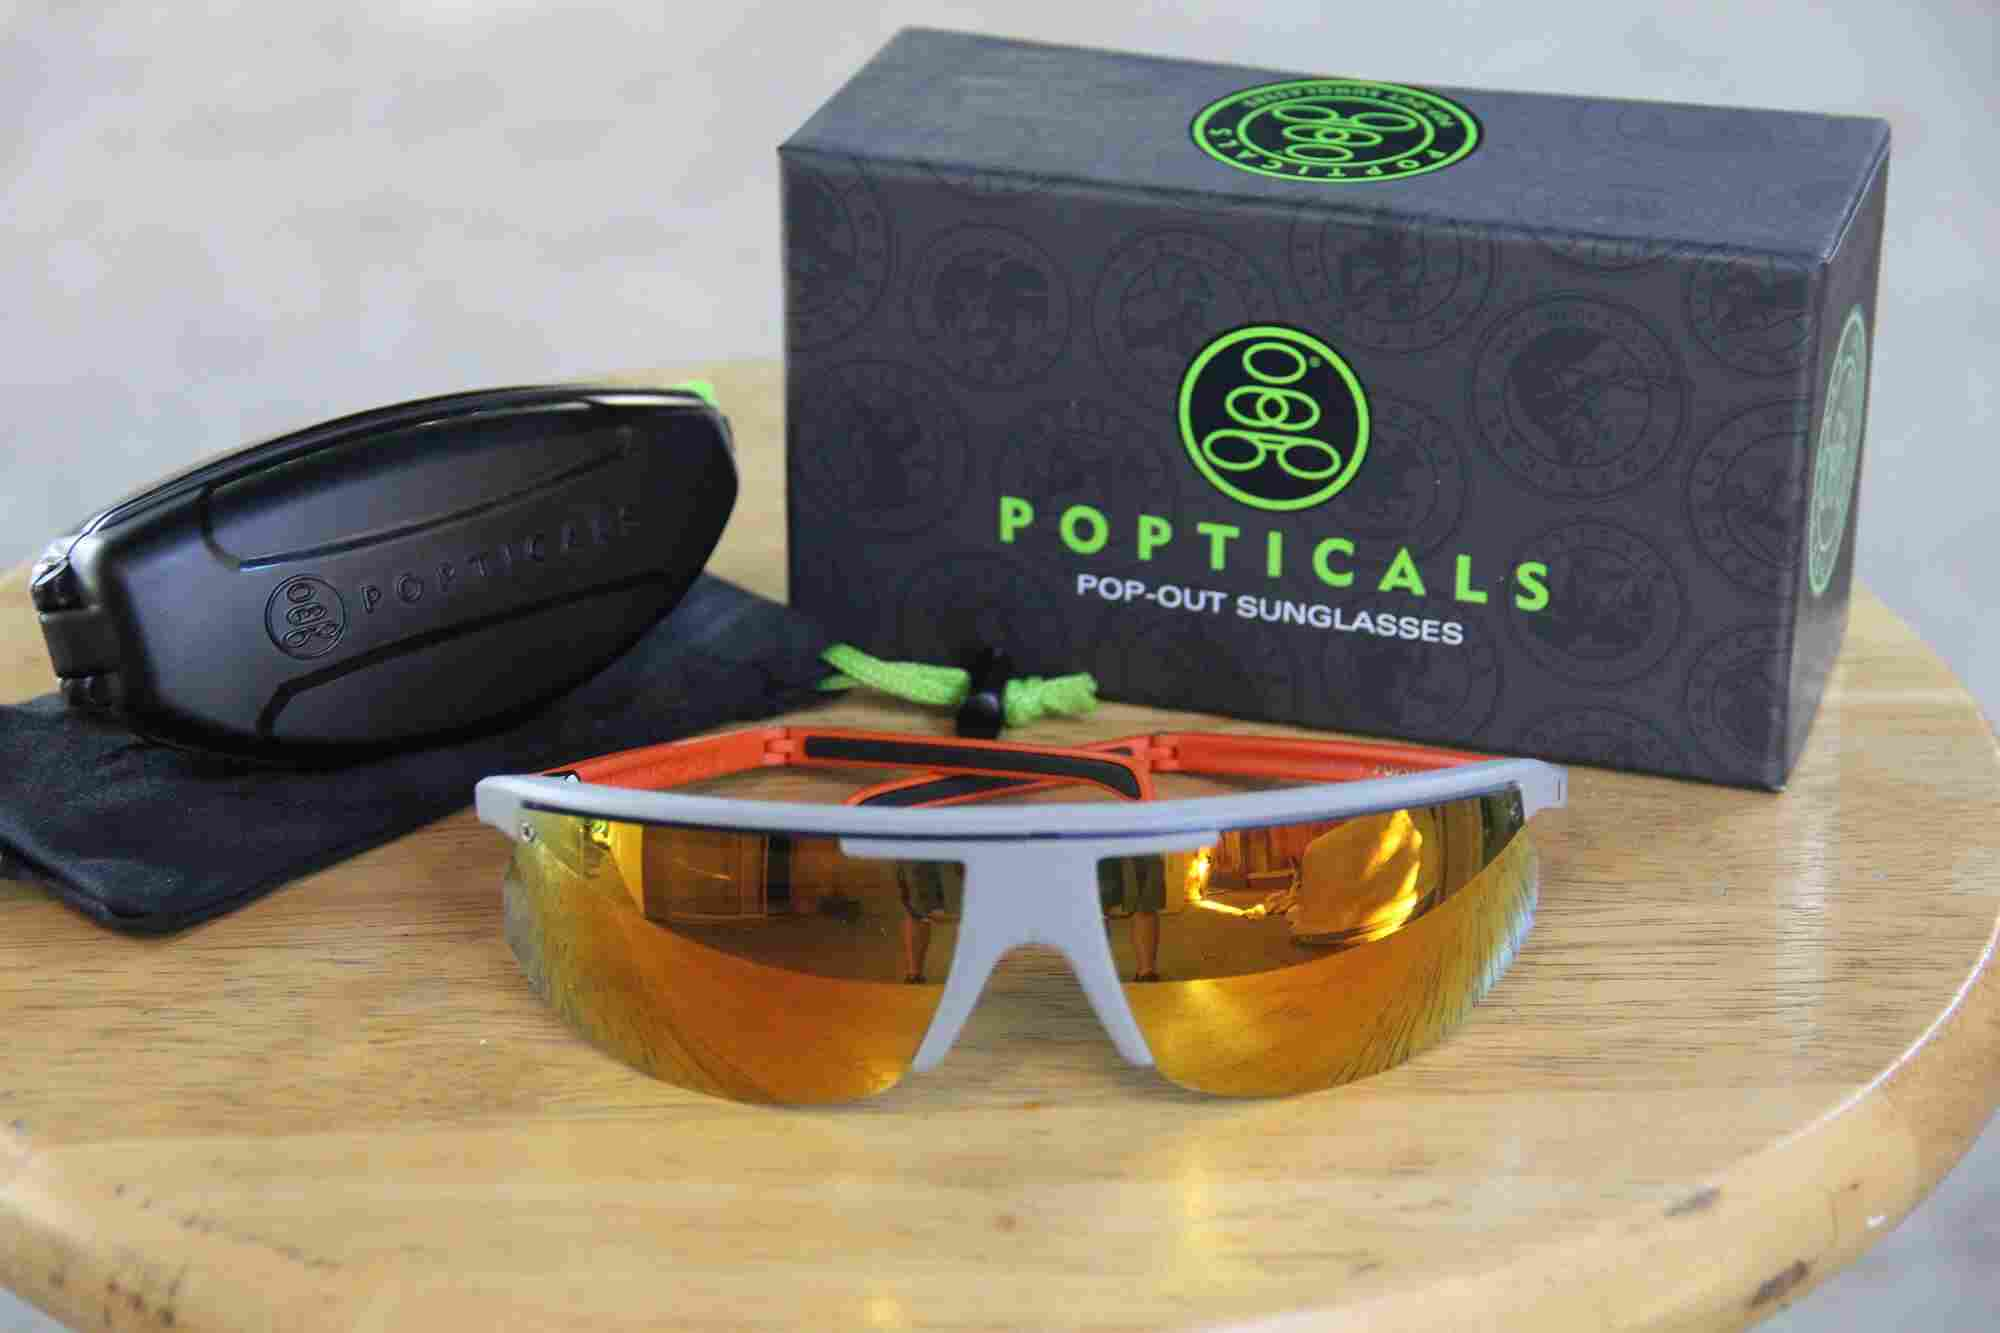 Popticals-Popstar-Polarized-Sunglasses-Case-Fold-Up-featured